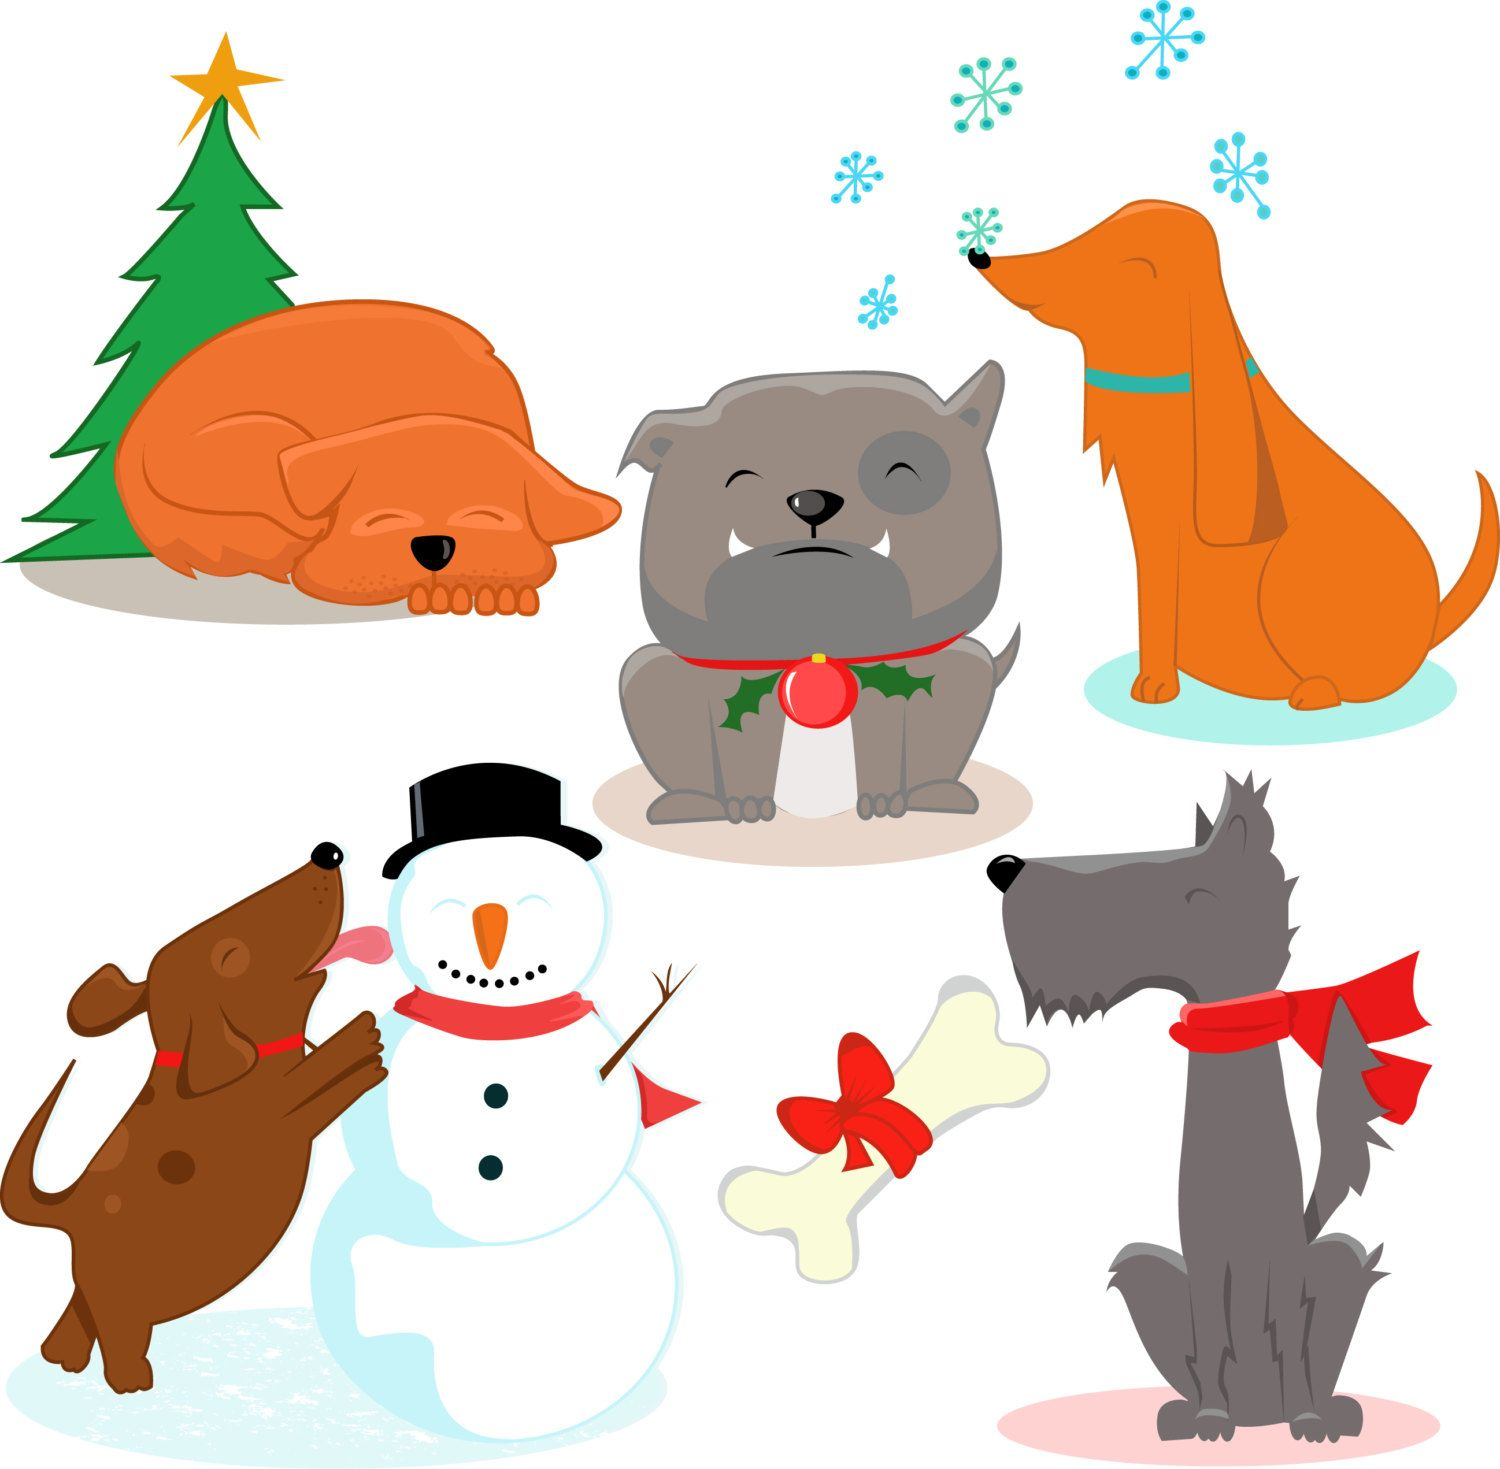 Premium dogs clipart, Cute dog , Xmas clipart, Christmas dog.